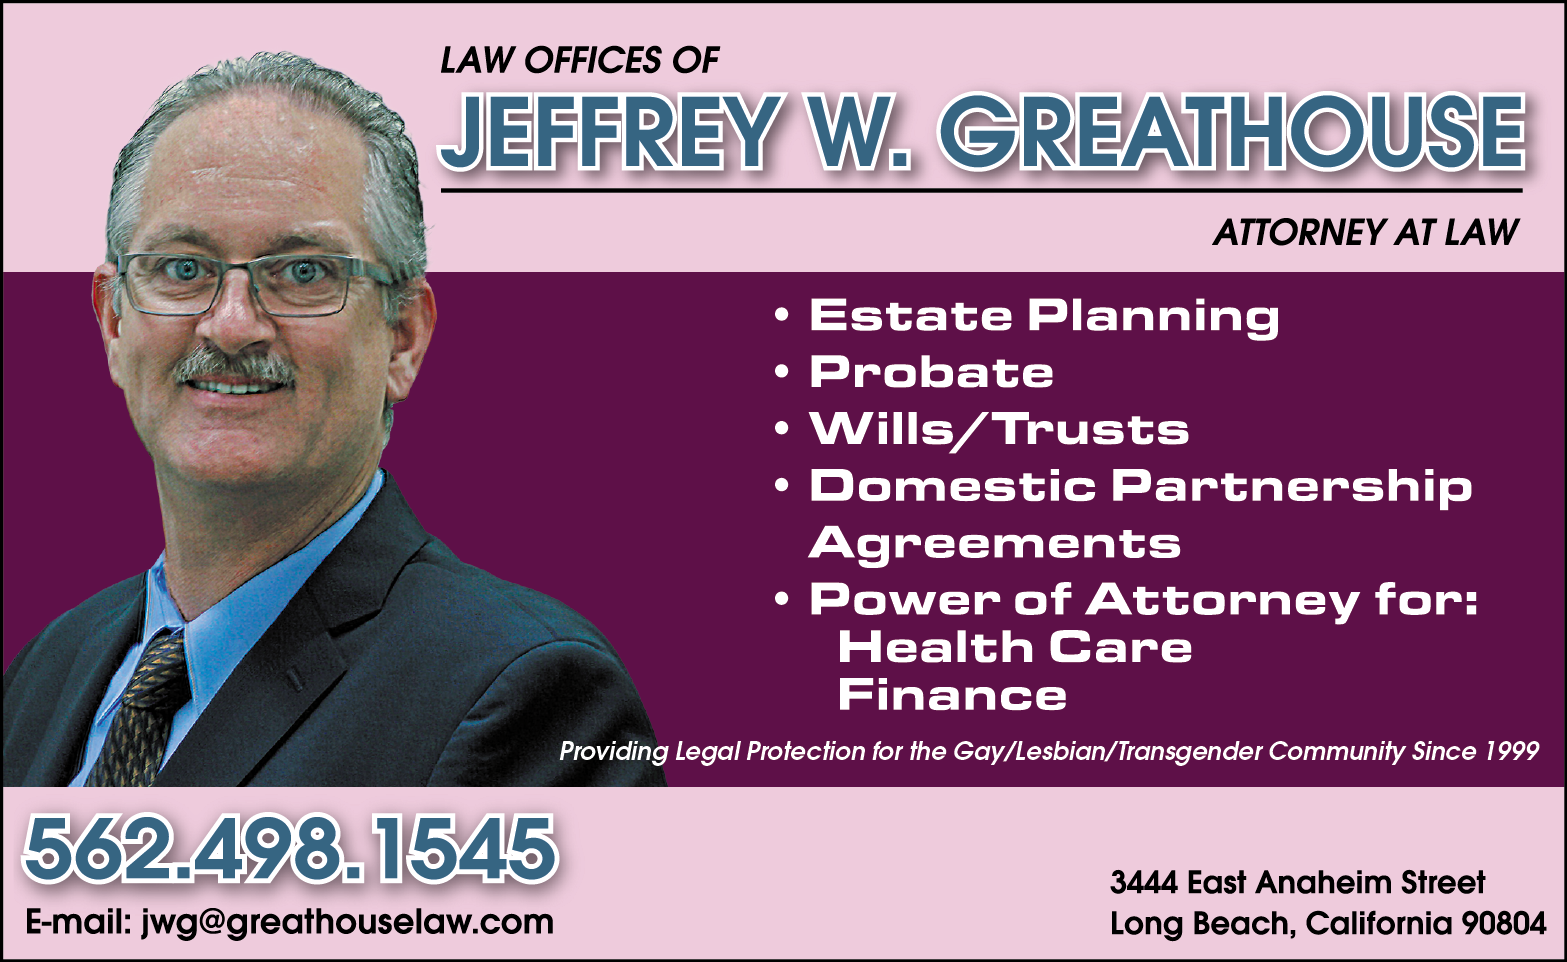 GREATHOUSE, JEFFREY W.